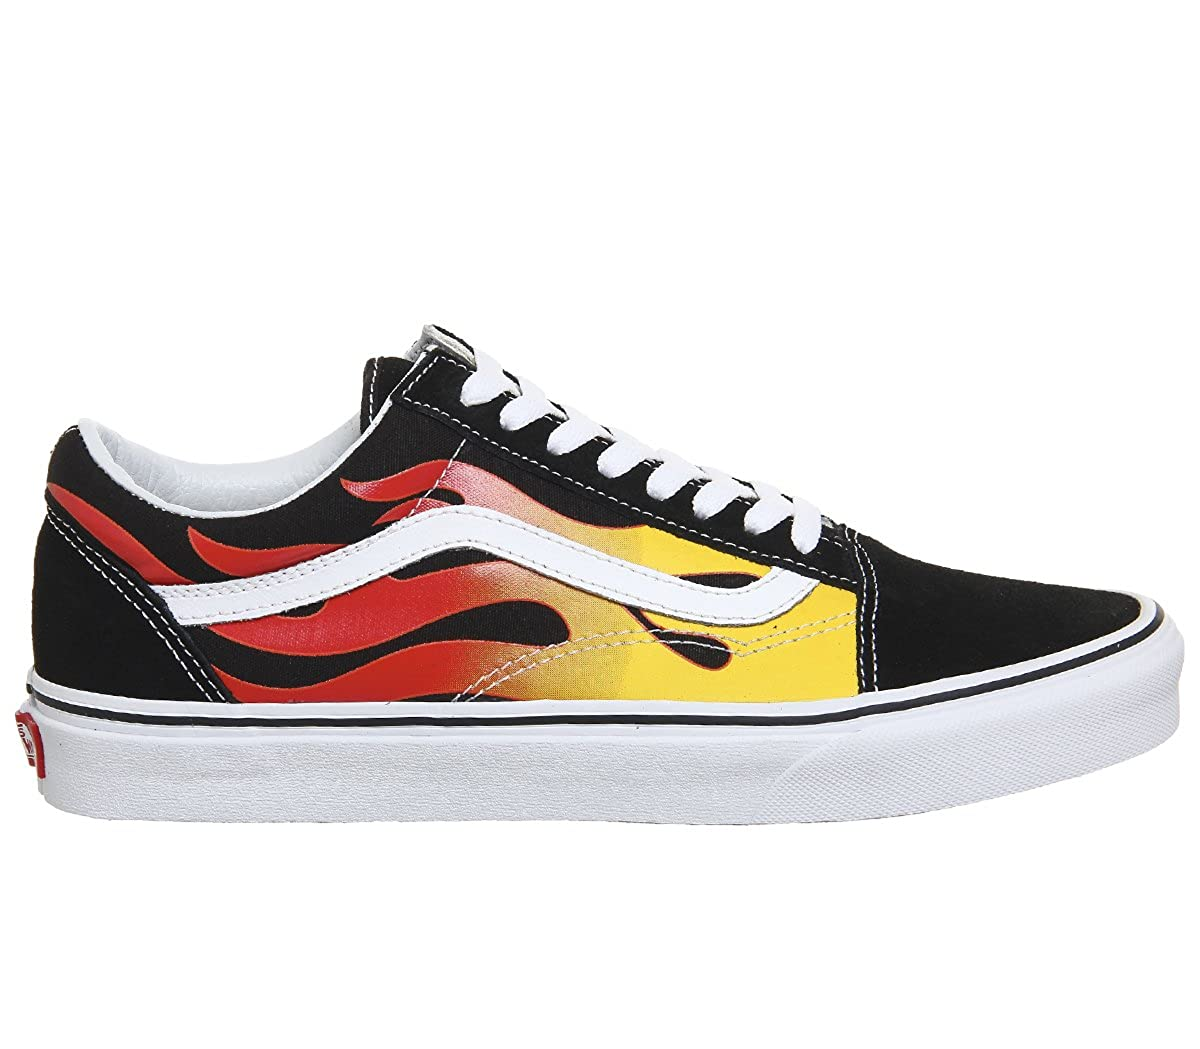 a1e0ce07f6 Vans Old Skool Navy (VN000D3HNVY)  Vans  Amazon.ca  Sports   Outdoors